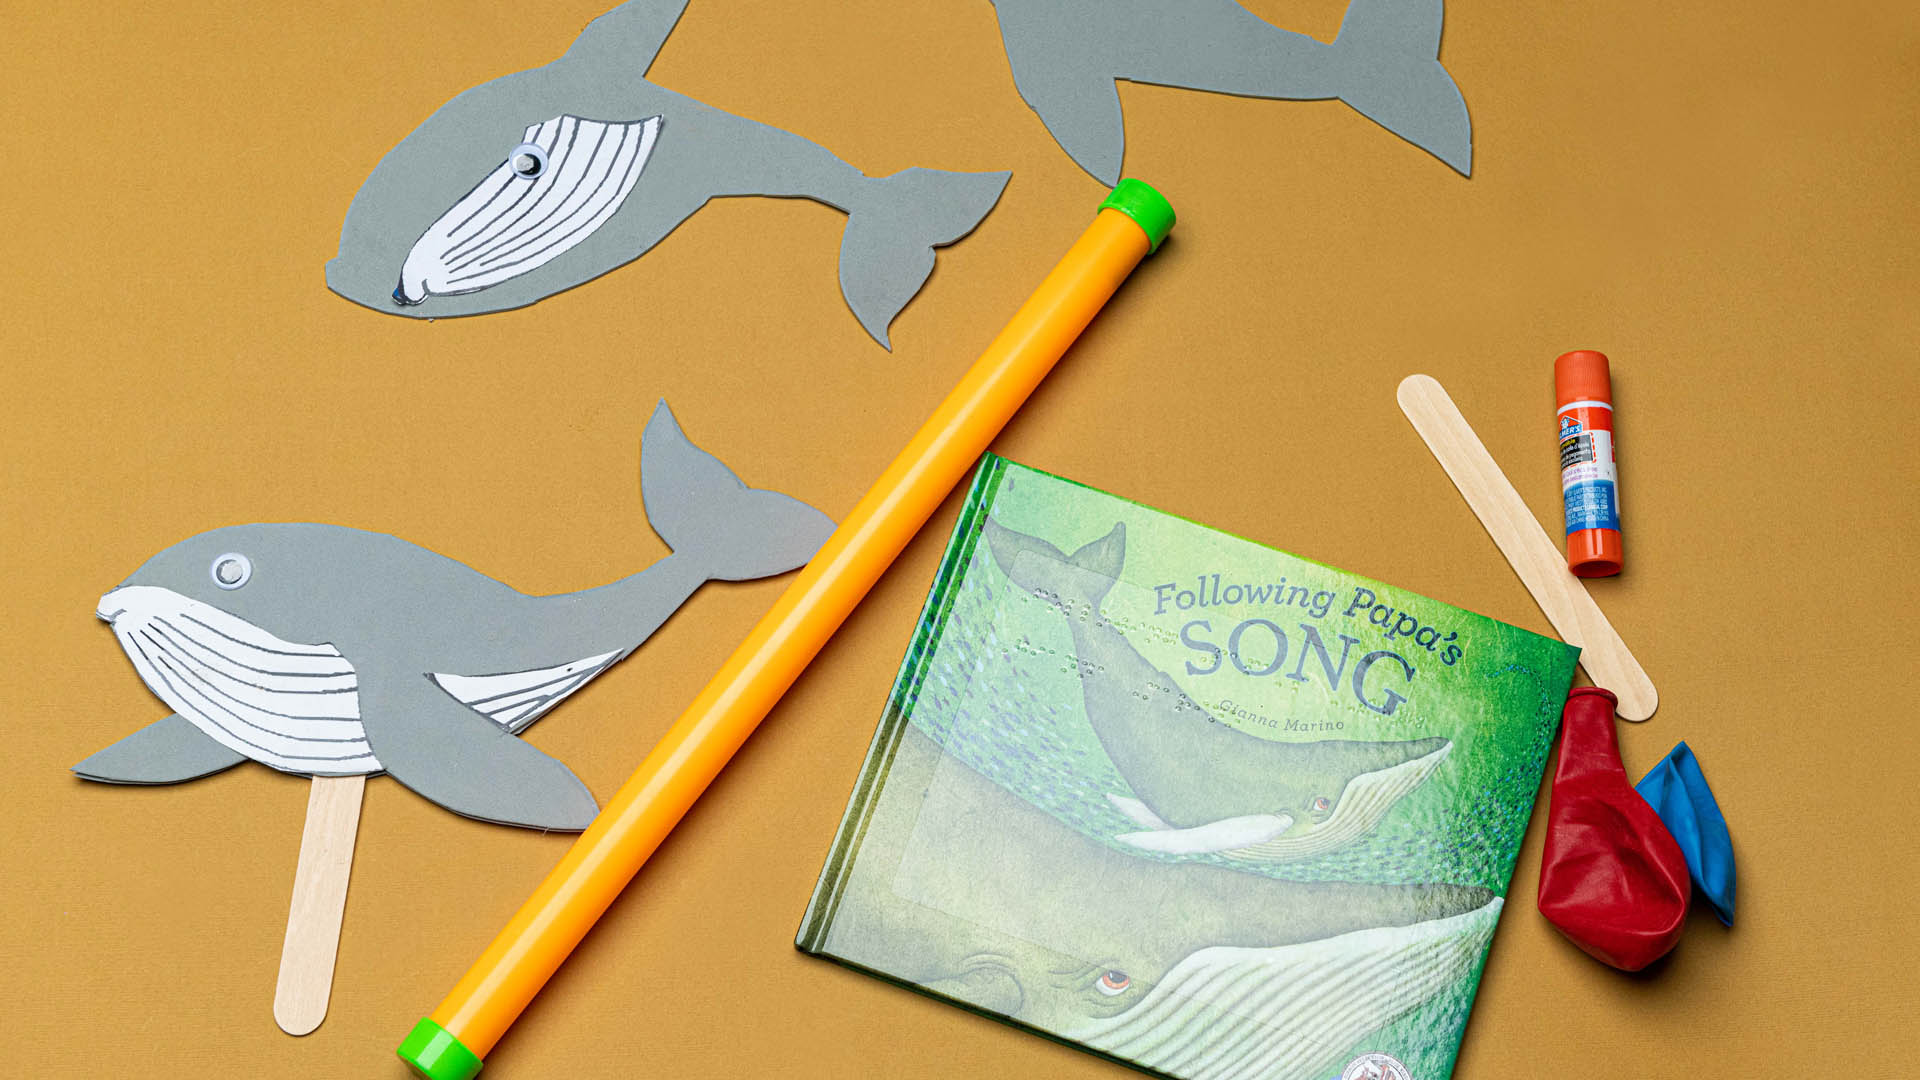 """Book titled """"Following Papa's Song"""" and craft materials to create a whale puppet"""